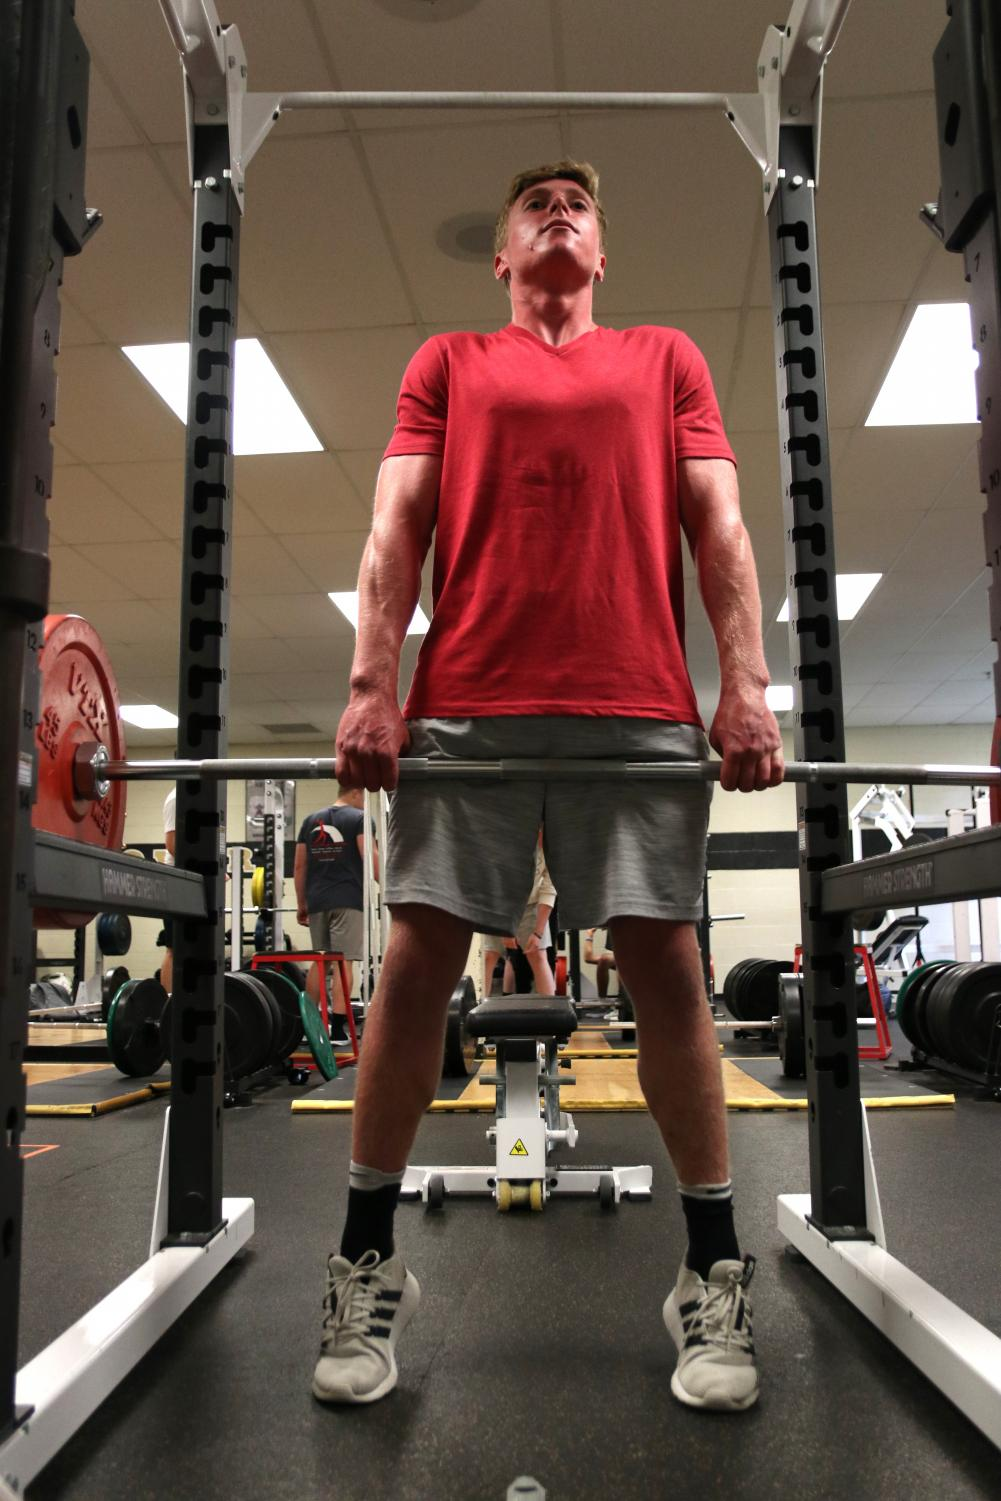 In+the+Weight+Room%2C+senior+Jake+Nelson+does+a+set+of+shrugs+during+Flex+Time.+Students+who+want+to+go+to+the+weight+room%2C+walk+the+track+or+take+part+in+other+physical+education+activities+must+be+enrolled+in+a+physical+education+class+and+can+sign+up+on+Google+Classroom+with+the+code+%22J47P3qq%22.